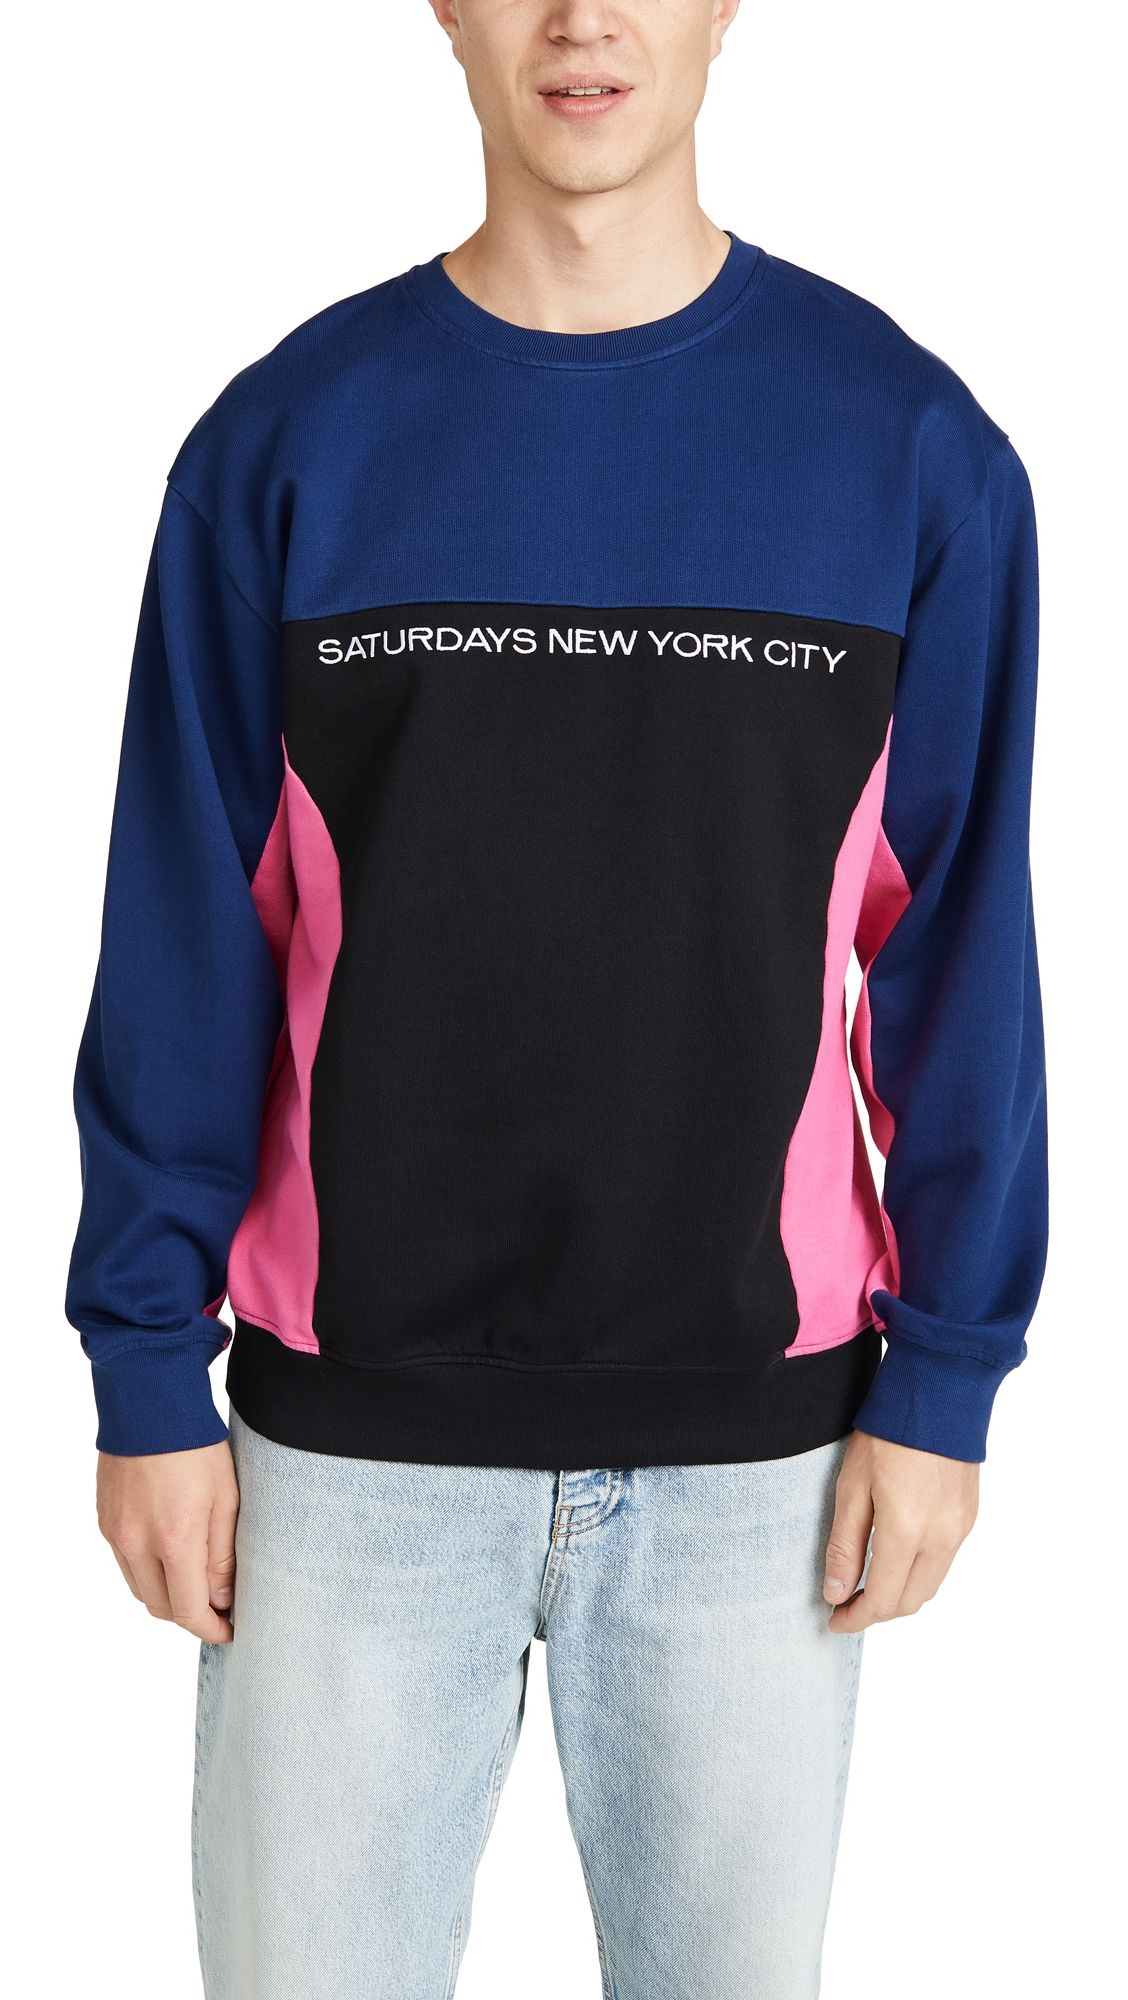 ff969fc73f SATURDAYS SURF NYC BONDI CREW NECK SWEATSHIRT. #saturdayssurfnyc #cloth